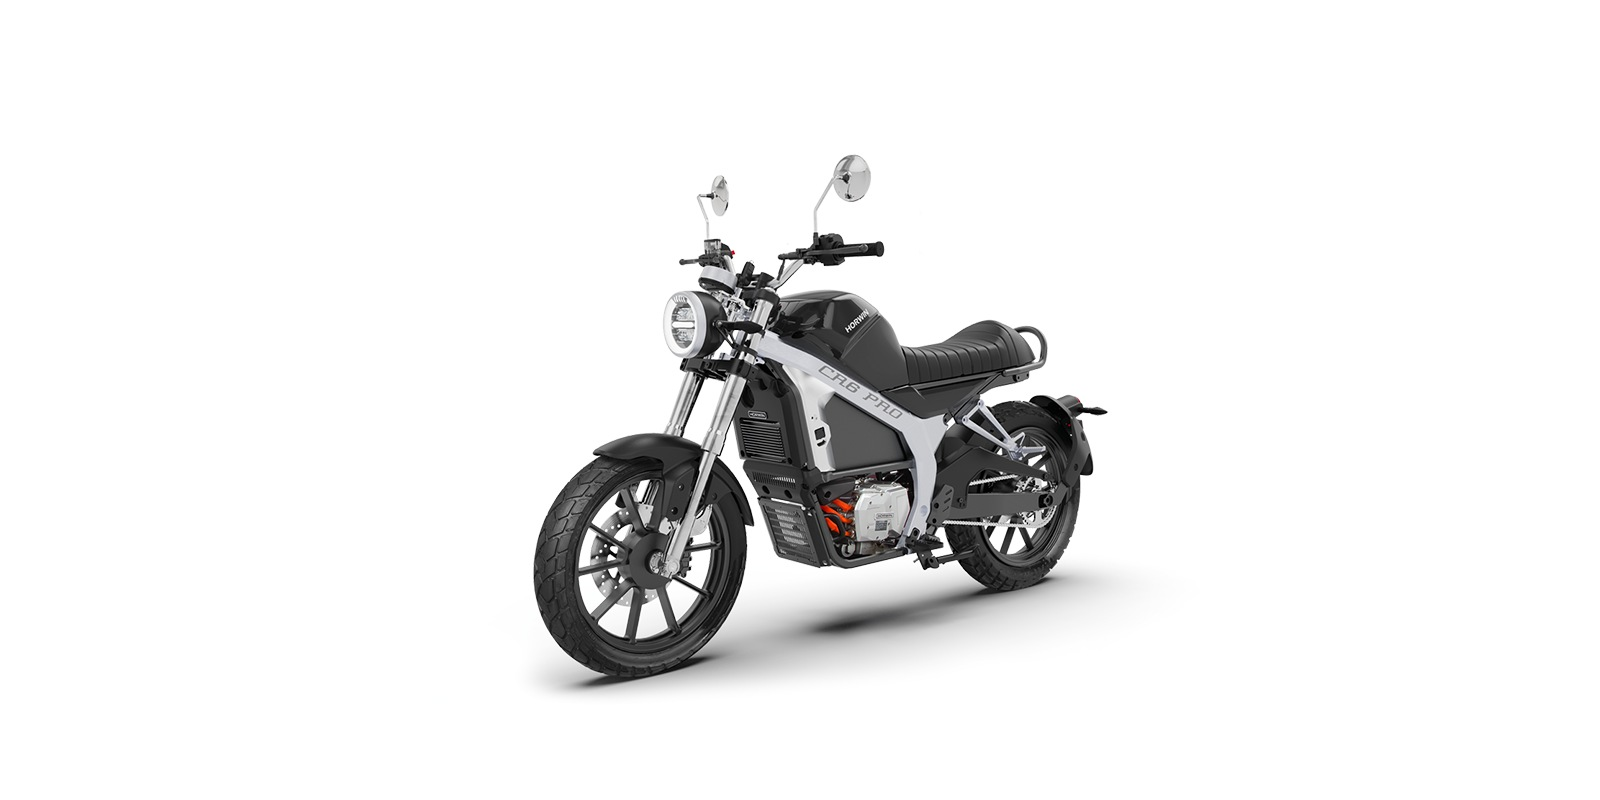 Horwin debuts two new electric motorcycles, one with a 5-speed gearbox